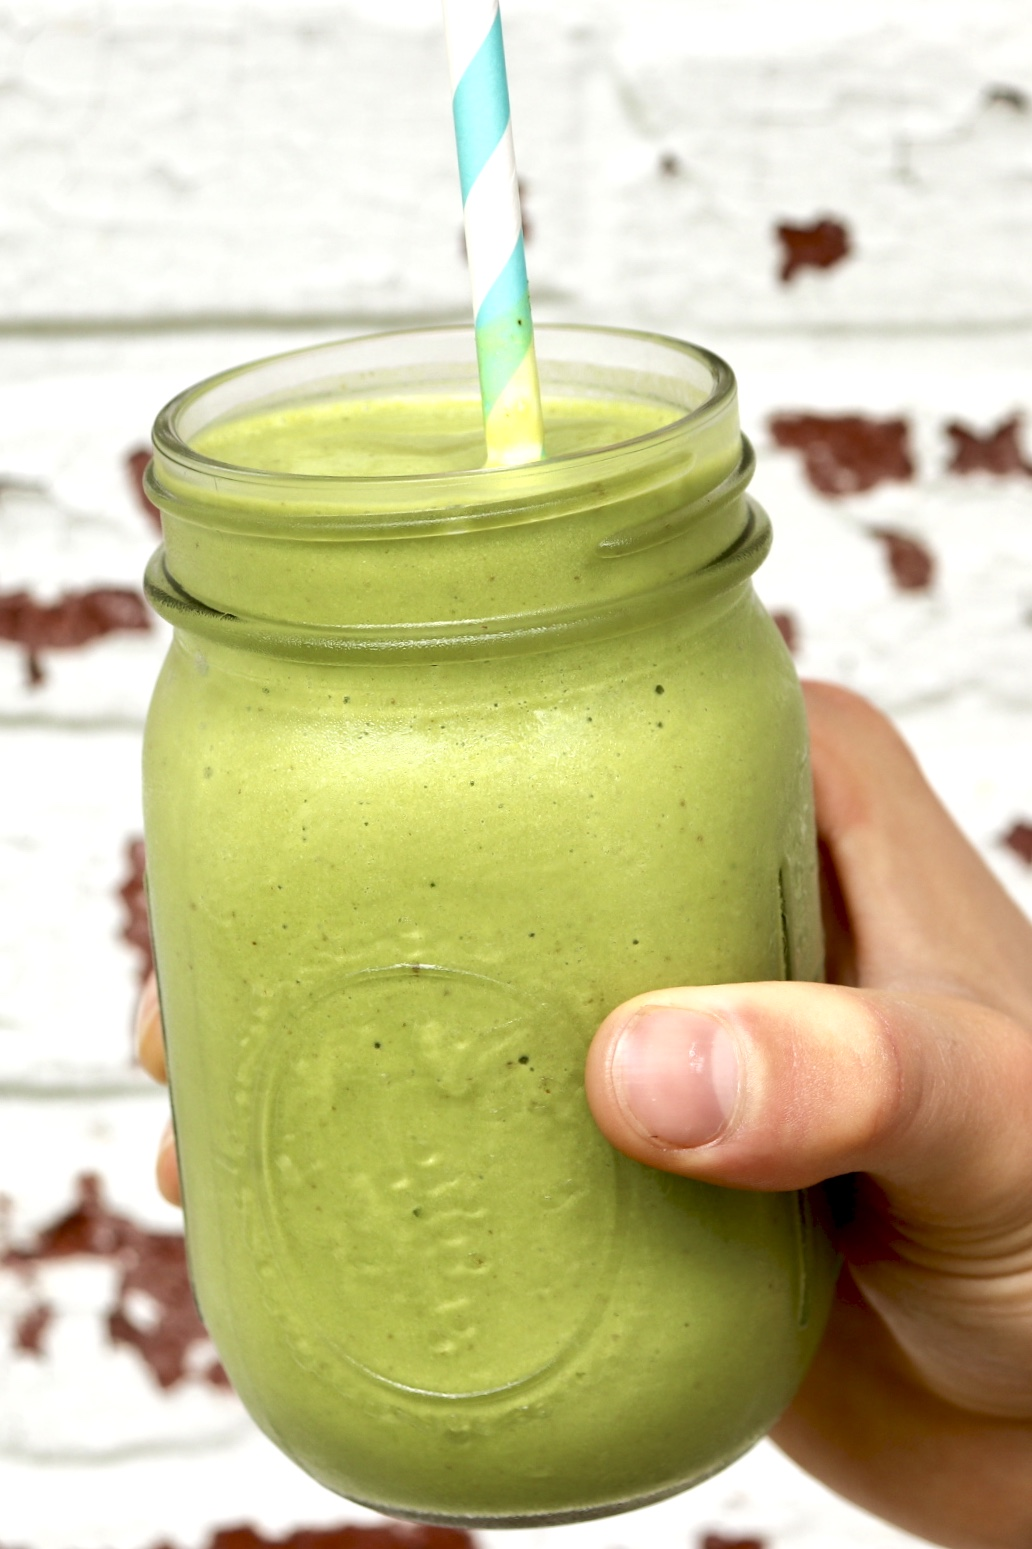 MEAL REPLACEMENT MATCHA SMOOTHIE is loaded with superfoods, quality protein and a modest amount of fruit-and it's absolutely delicious. You need not be a matcha fan to love this smoothie!